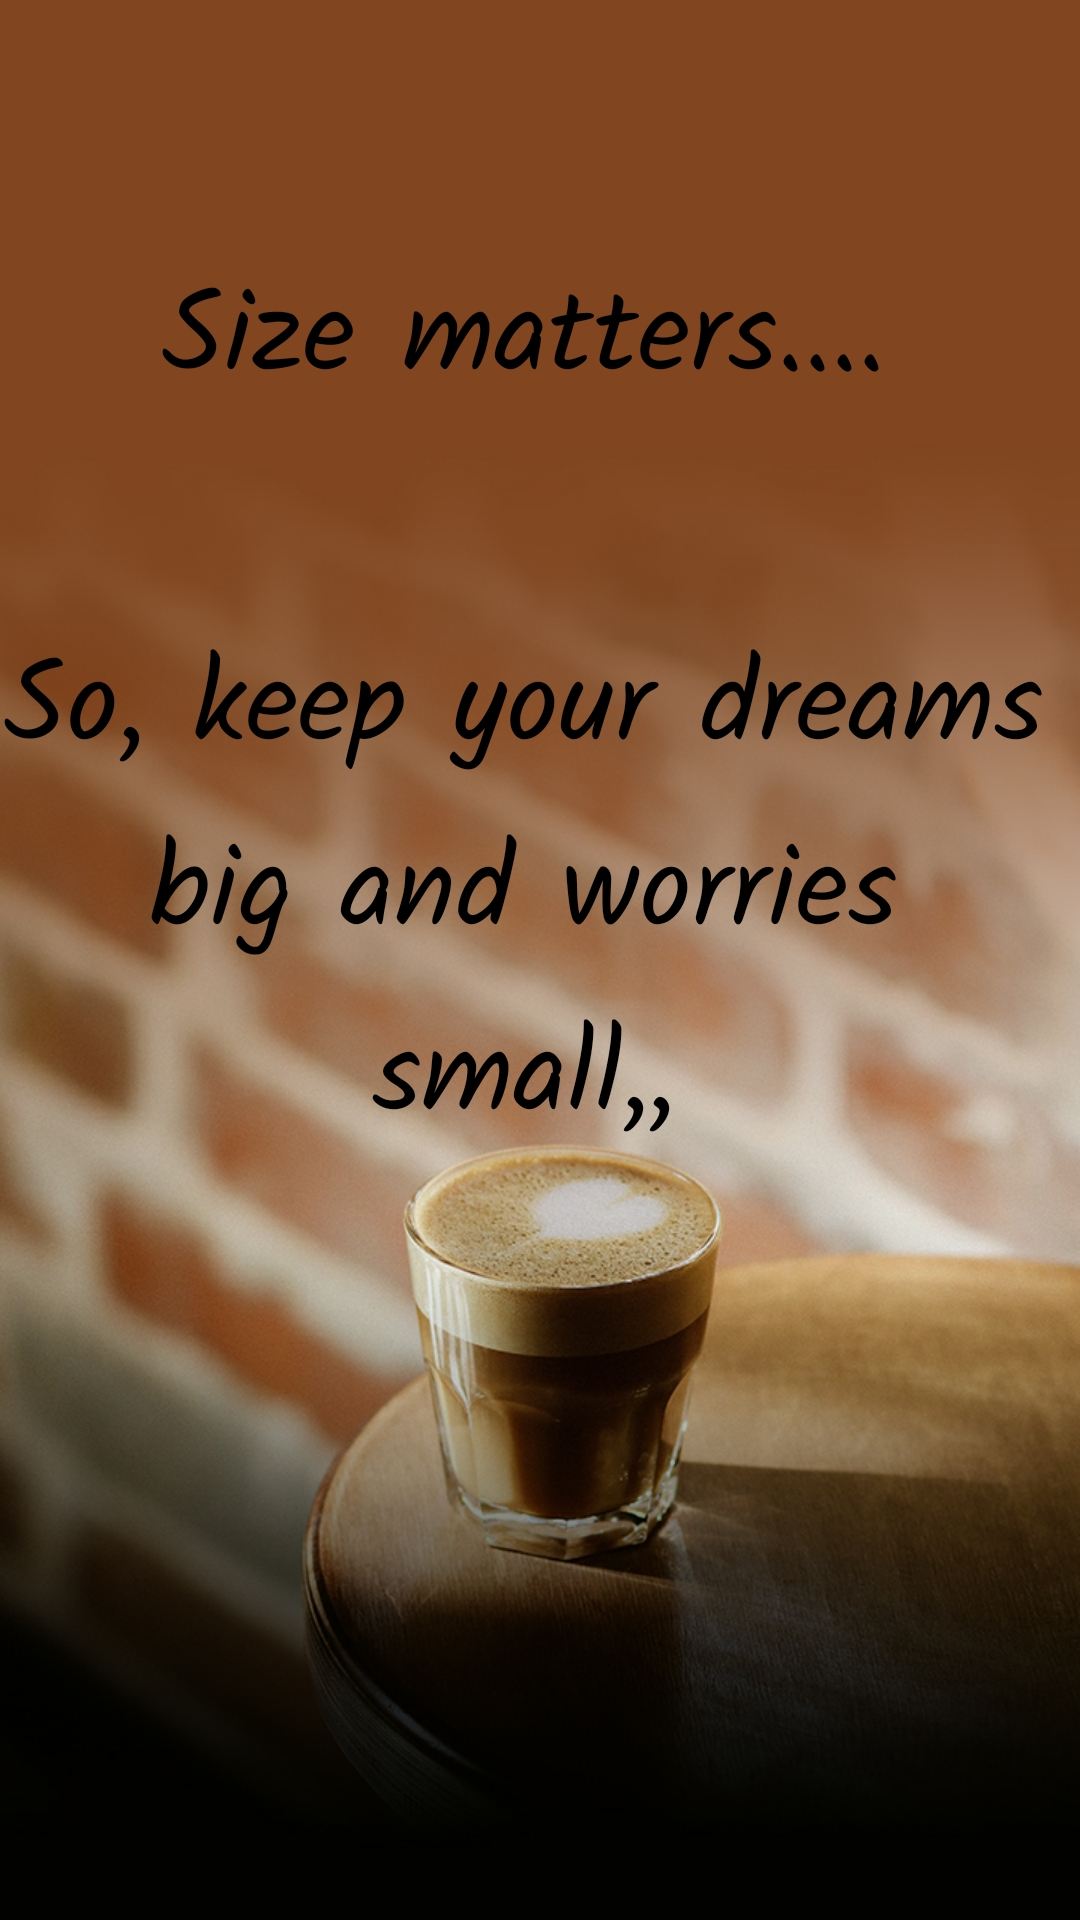 Size matters....  So, keep your dreams big and worries small,,